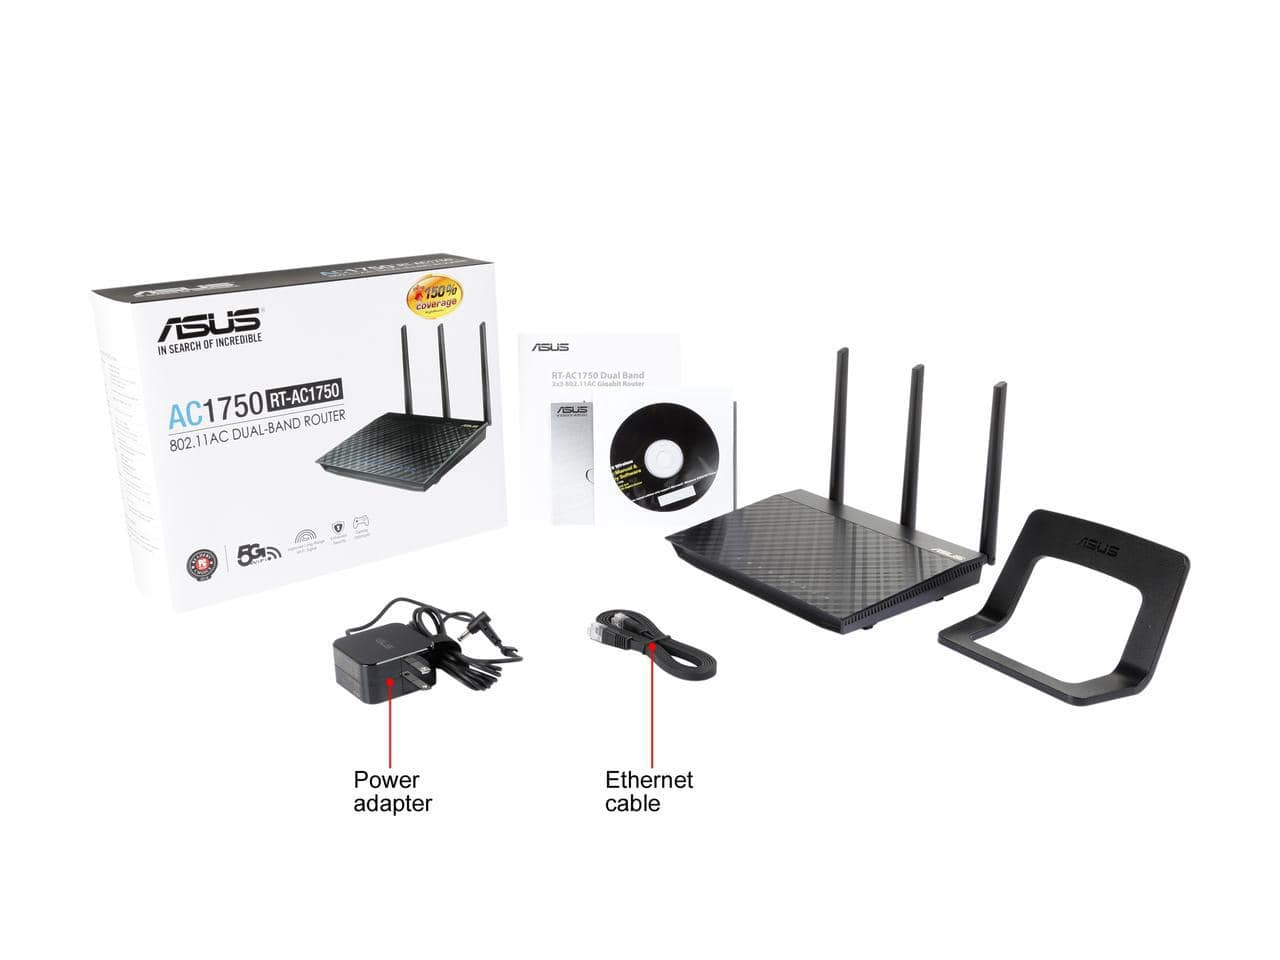 ASUS RT-AC1750 802.11ac Dual-Band Wireless-AC1750 Gigabit Router $59.99 After Rebate